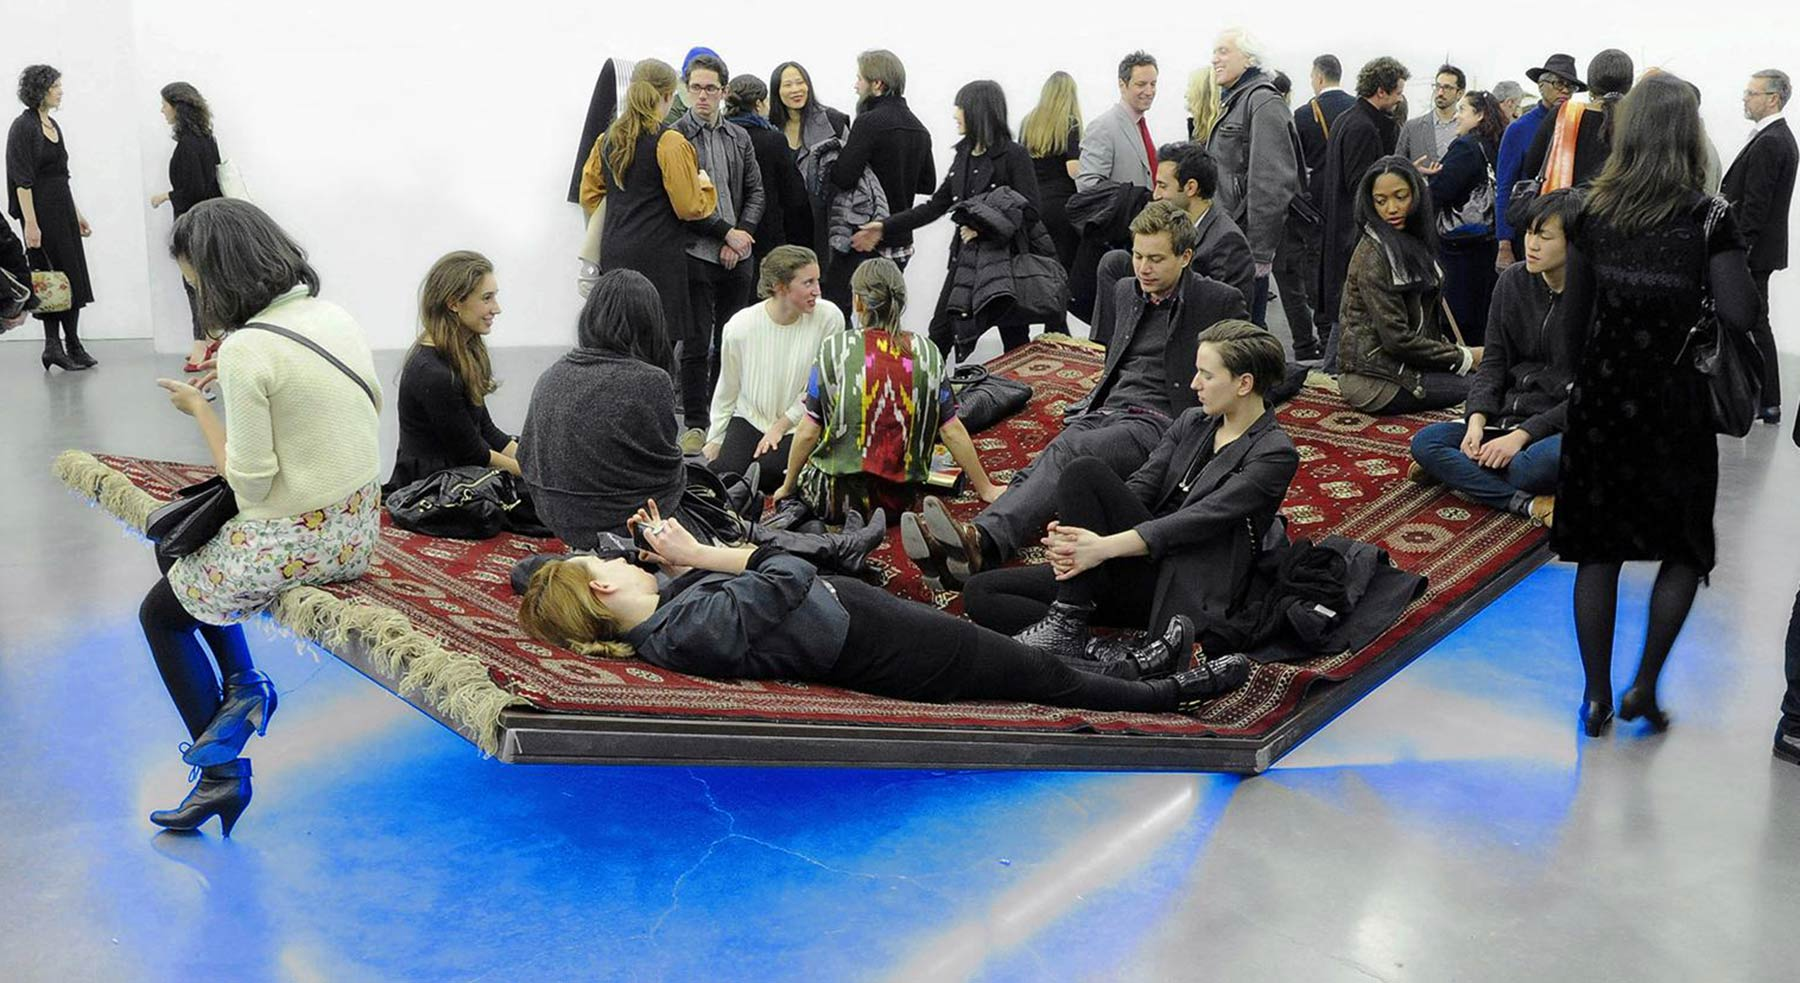 People sit on an angled carpet at an exhibition in New York